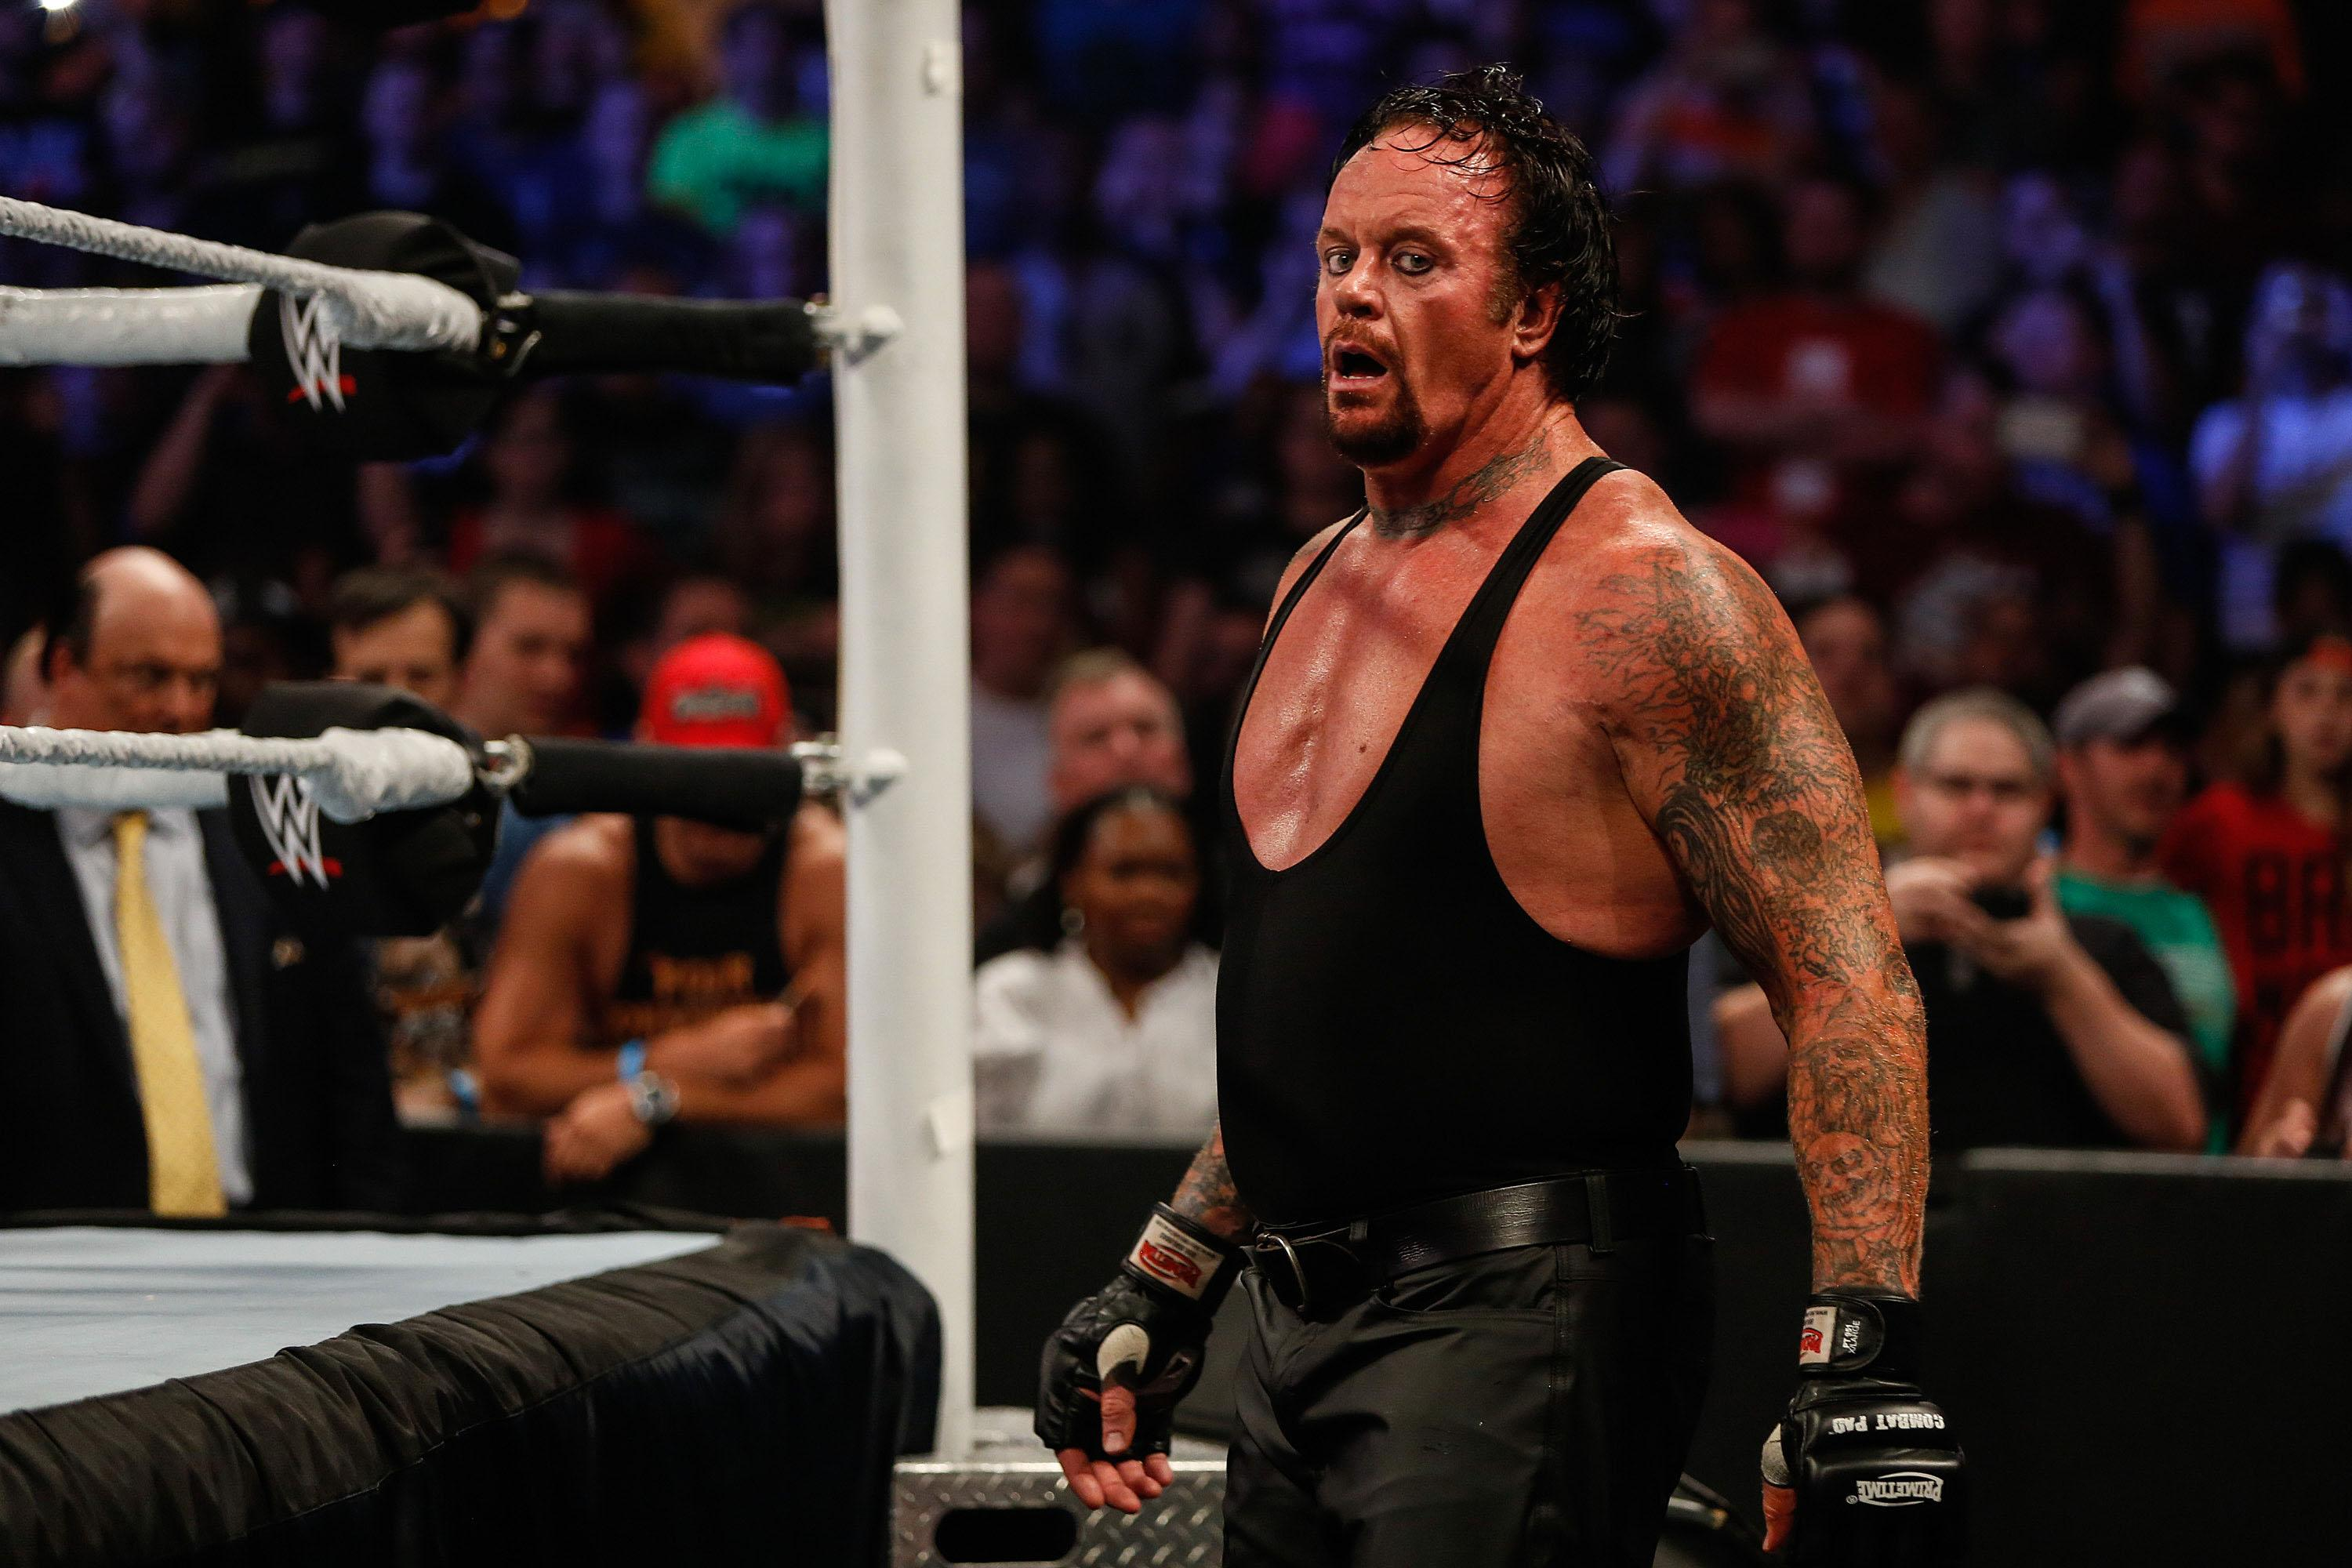 The Undertaker Returns And Makes Quick Work Of John Cena At Wrestlemania